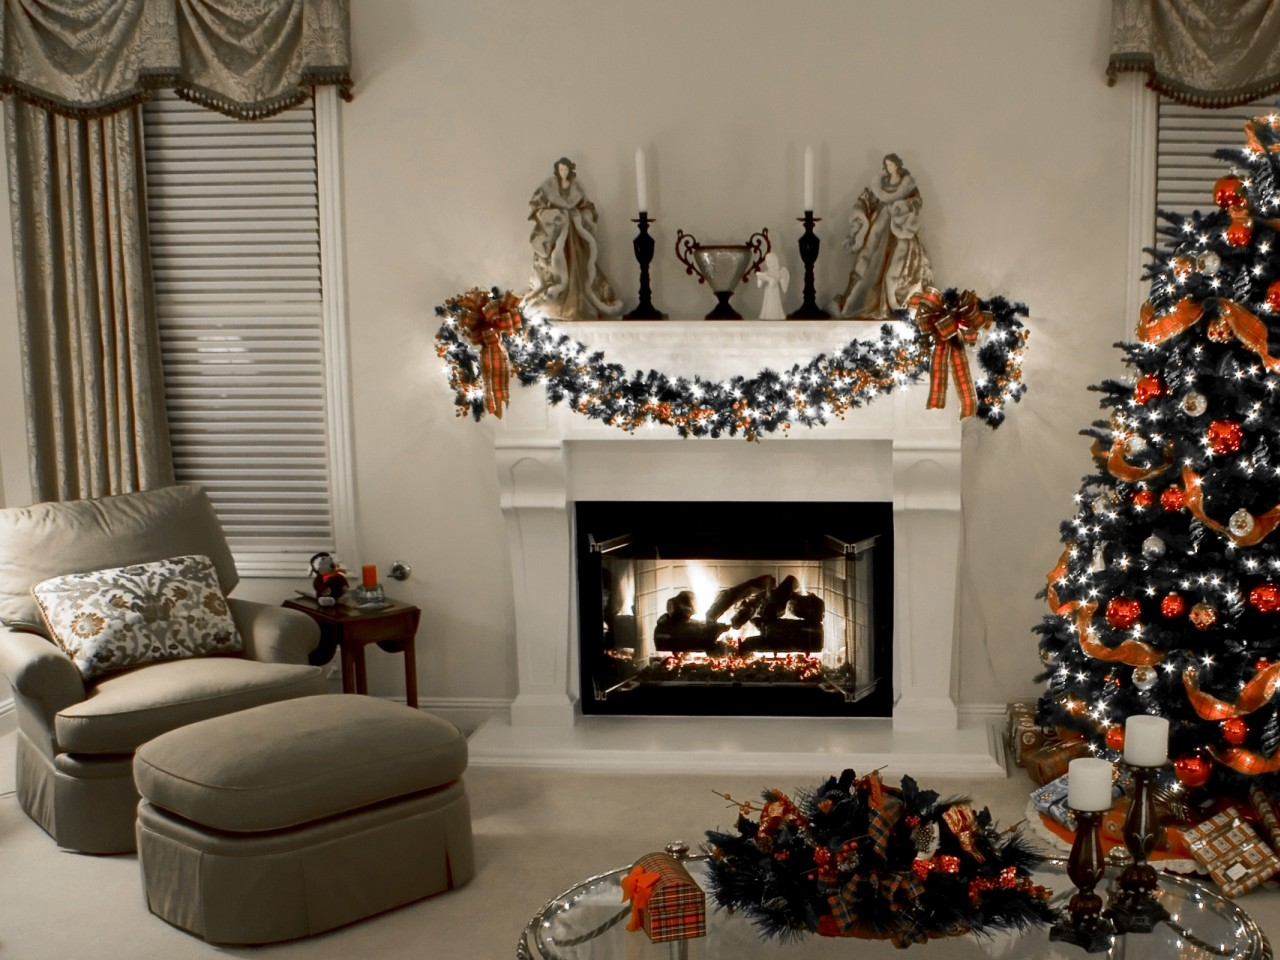 Decorated Christmas Fireplace and Tree